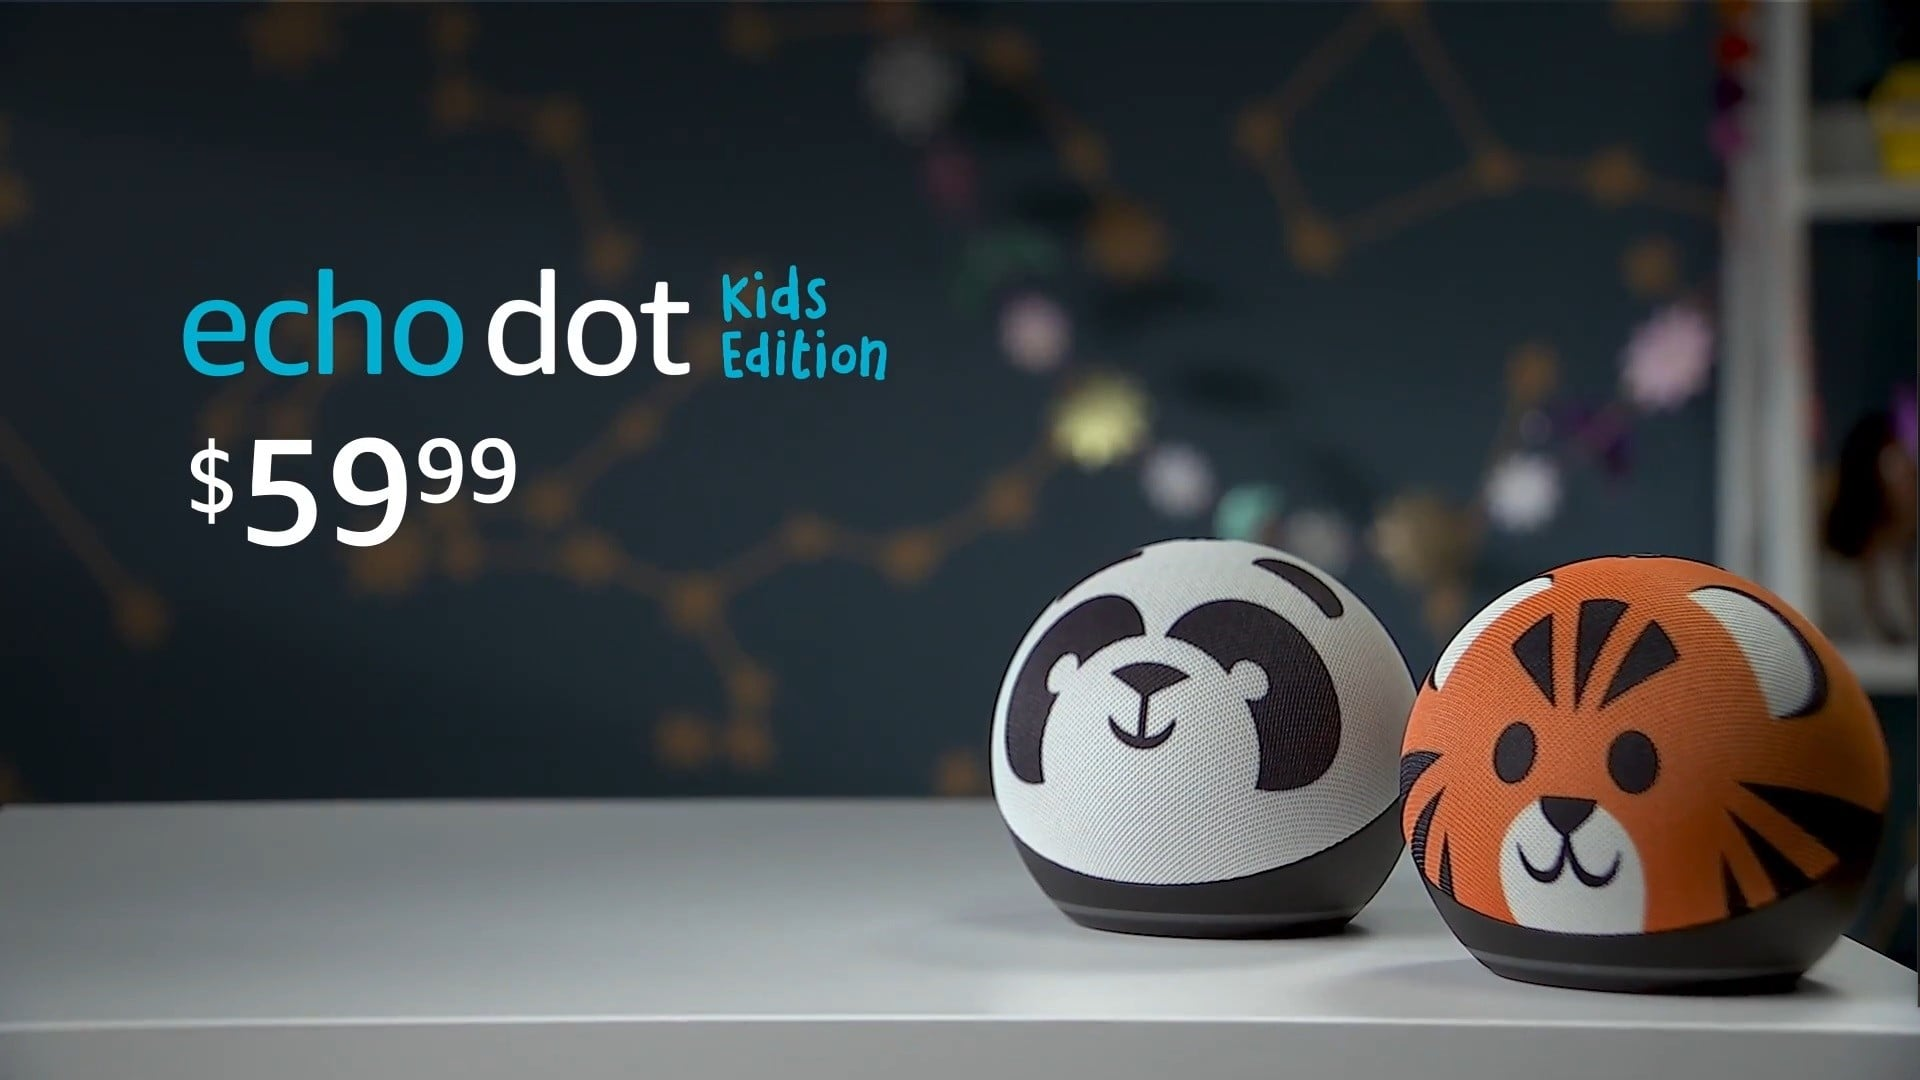 nuovi dispositivi amazon echo dot kids edition